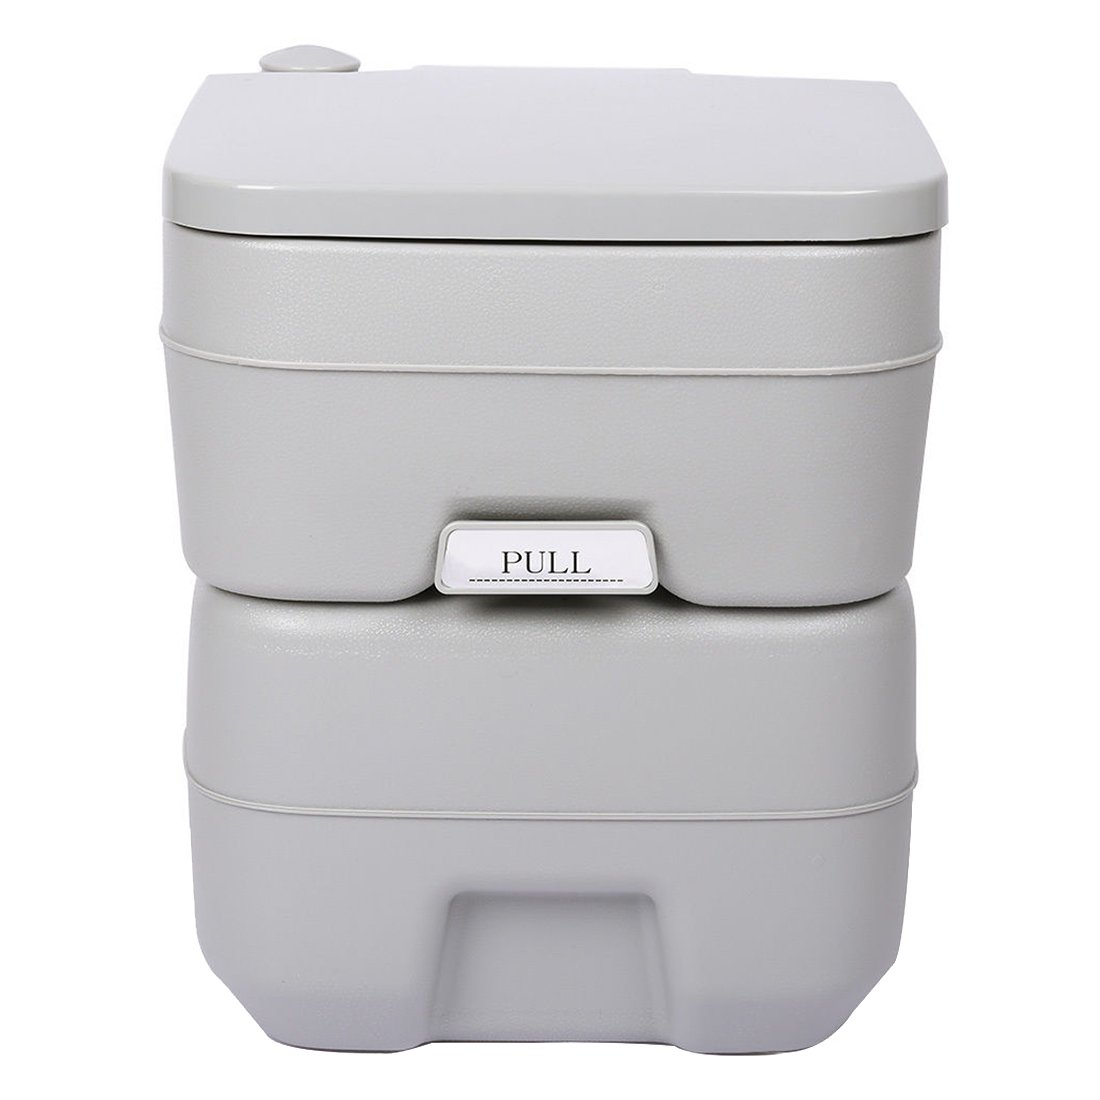 5 Gallon 20L Portable WC Toilet - TOOGOO(R) 5 Gallon 20L Portable WC Toilet Flush Camping Porta Travel Outdoor Hiking Potty by TOOGOO(R) (Image #1)